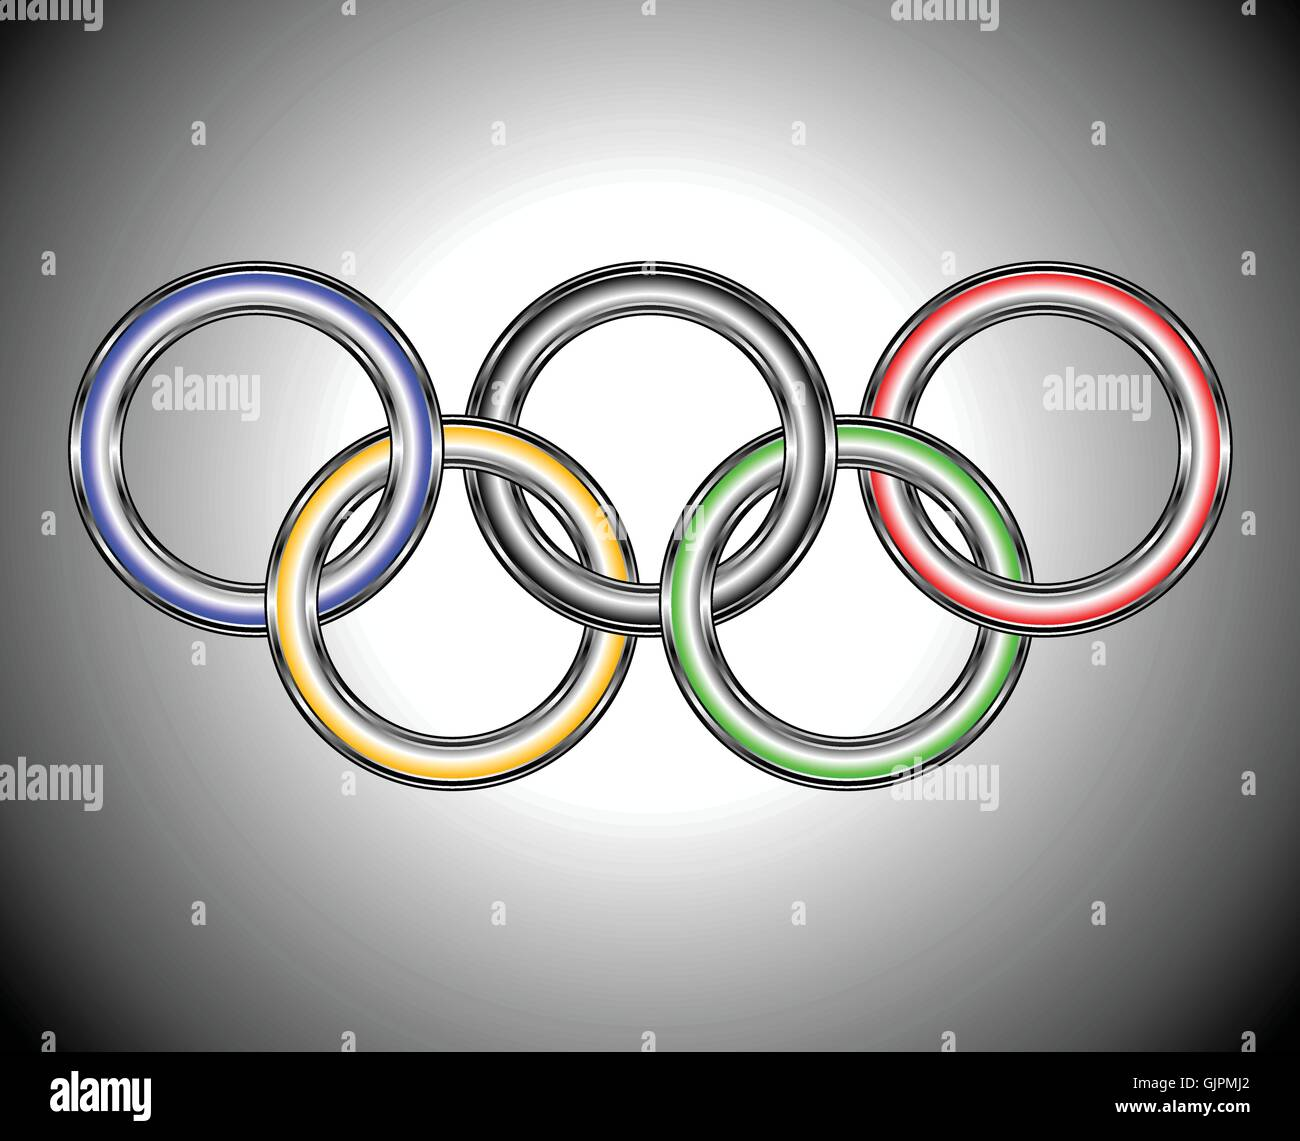 olimpic ring - Stock Vector